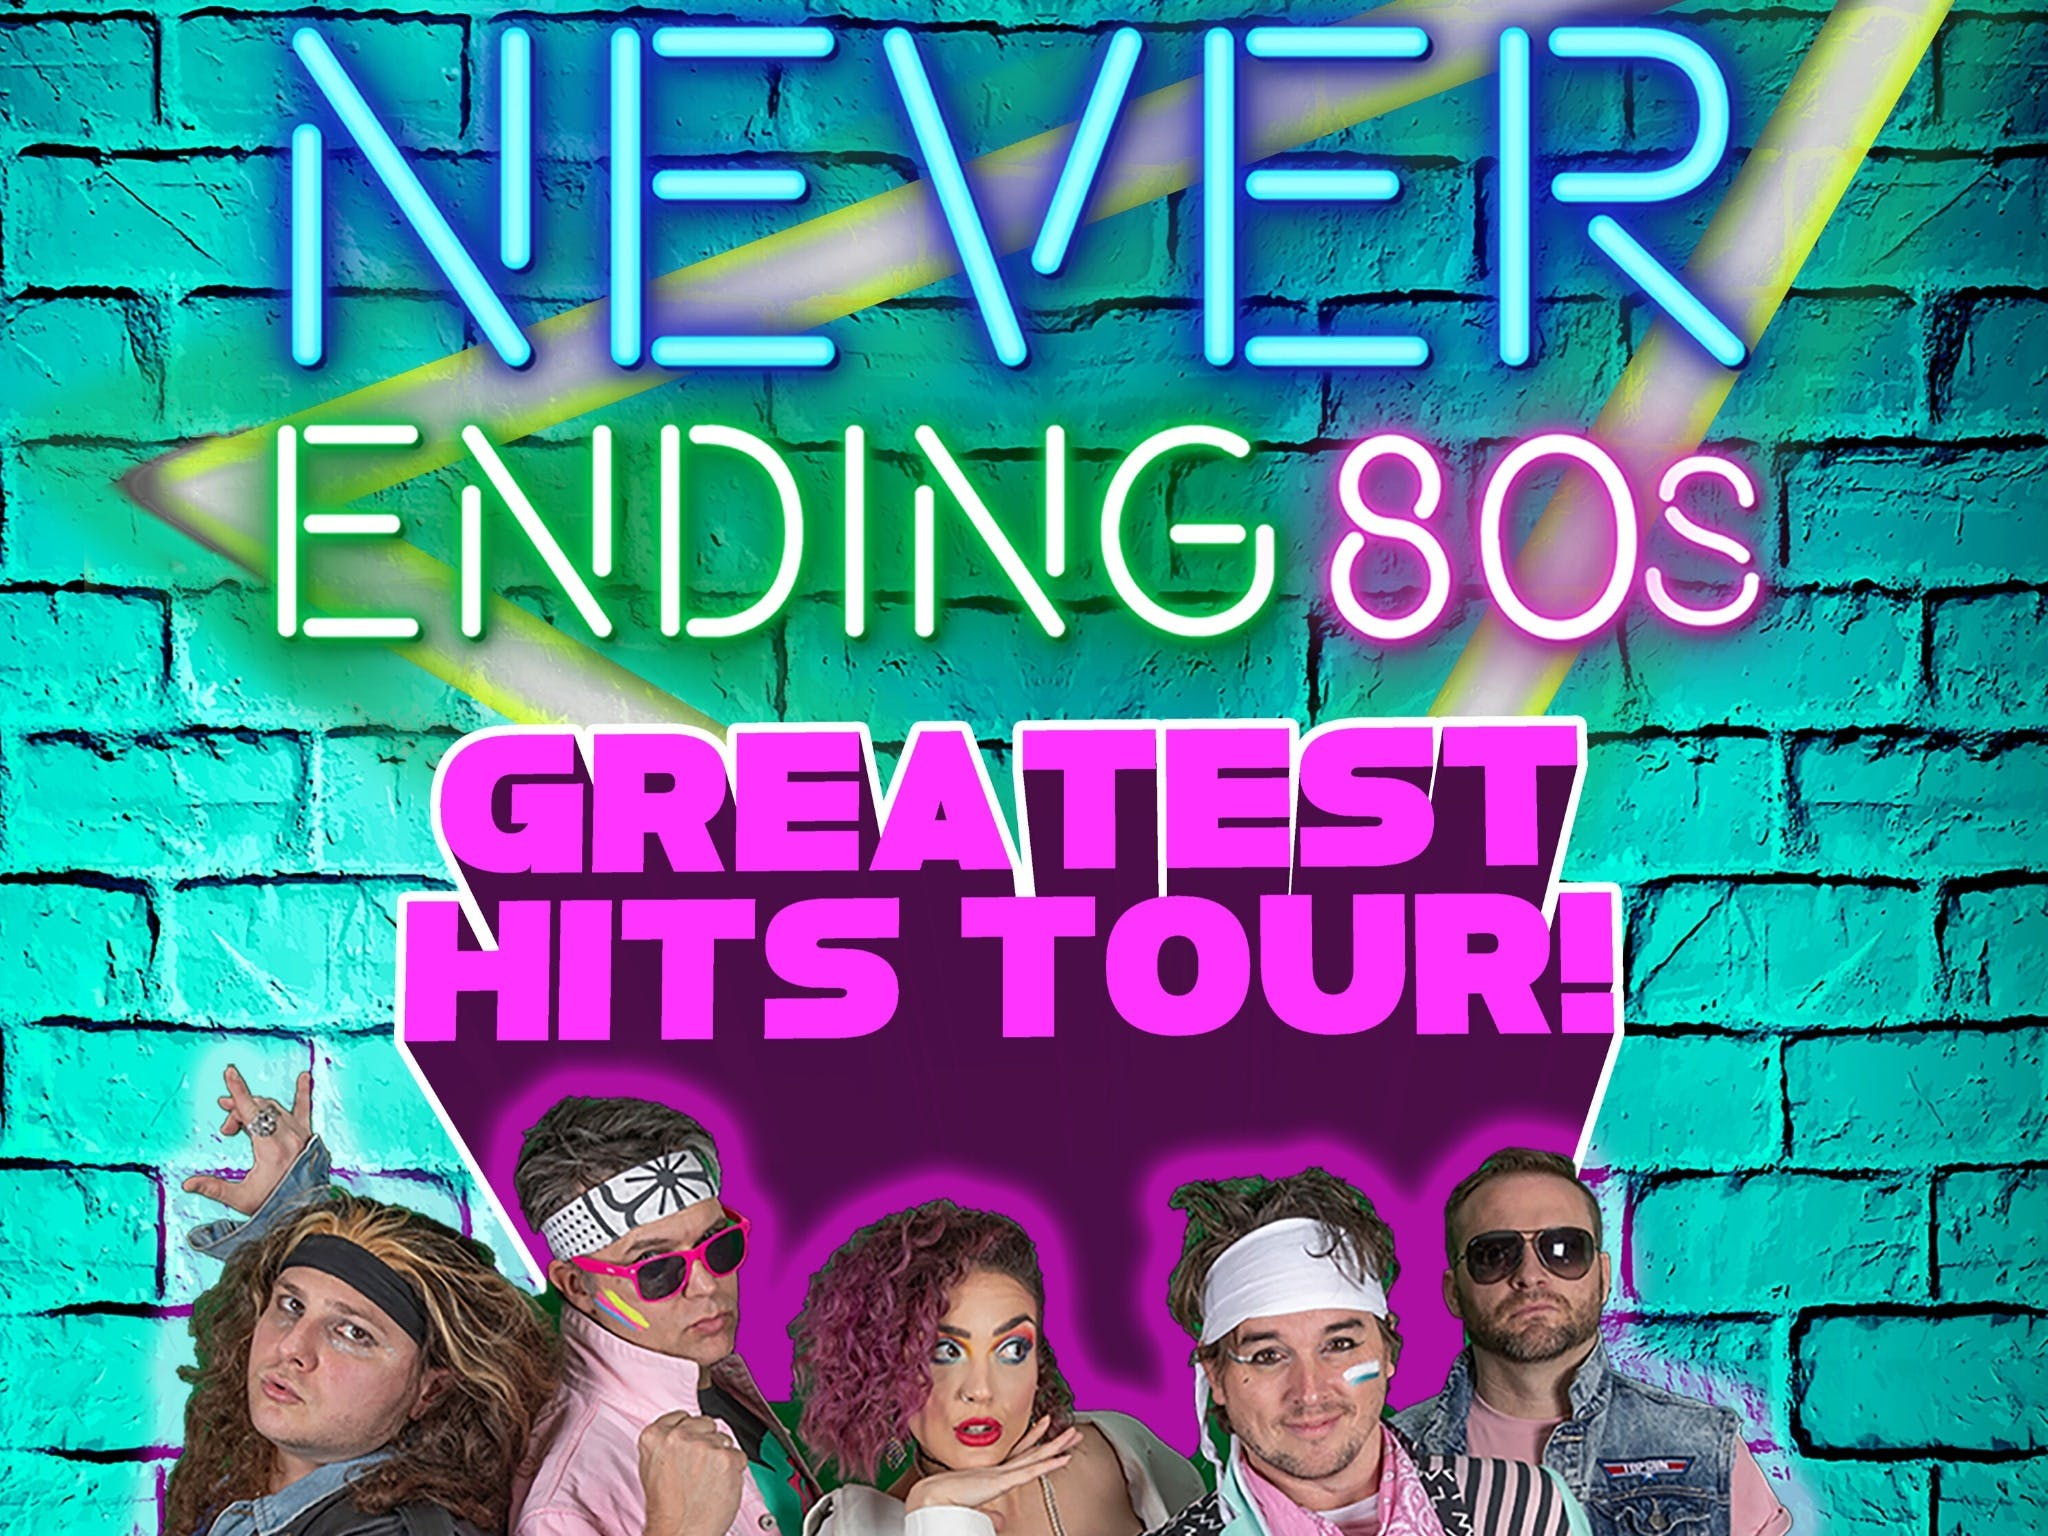 Never Ending 80s - The Greatest Hits Tour - Surfers Gold Coast